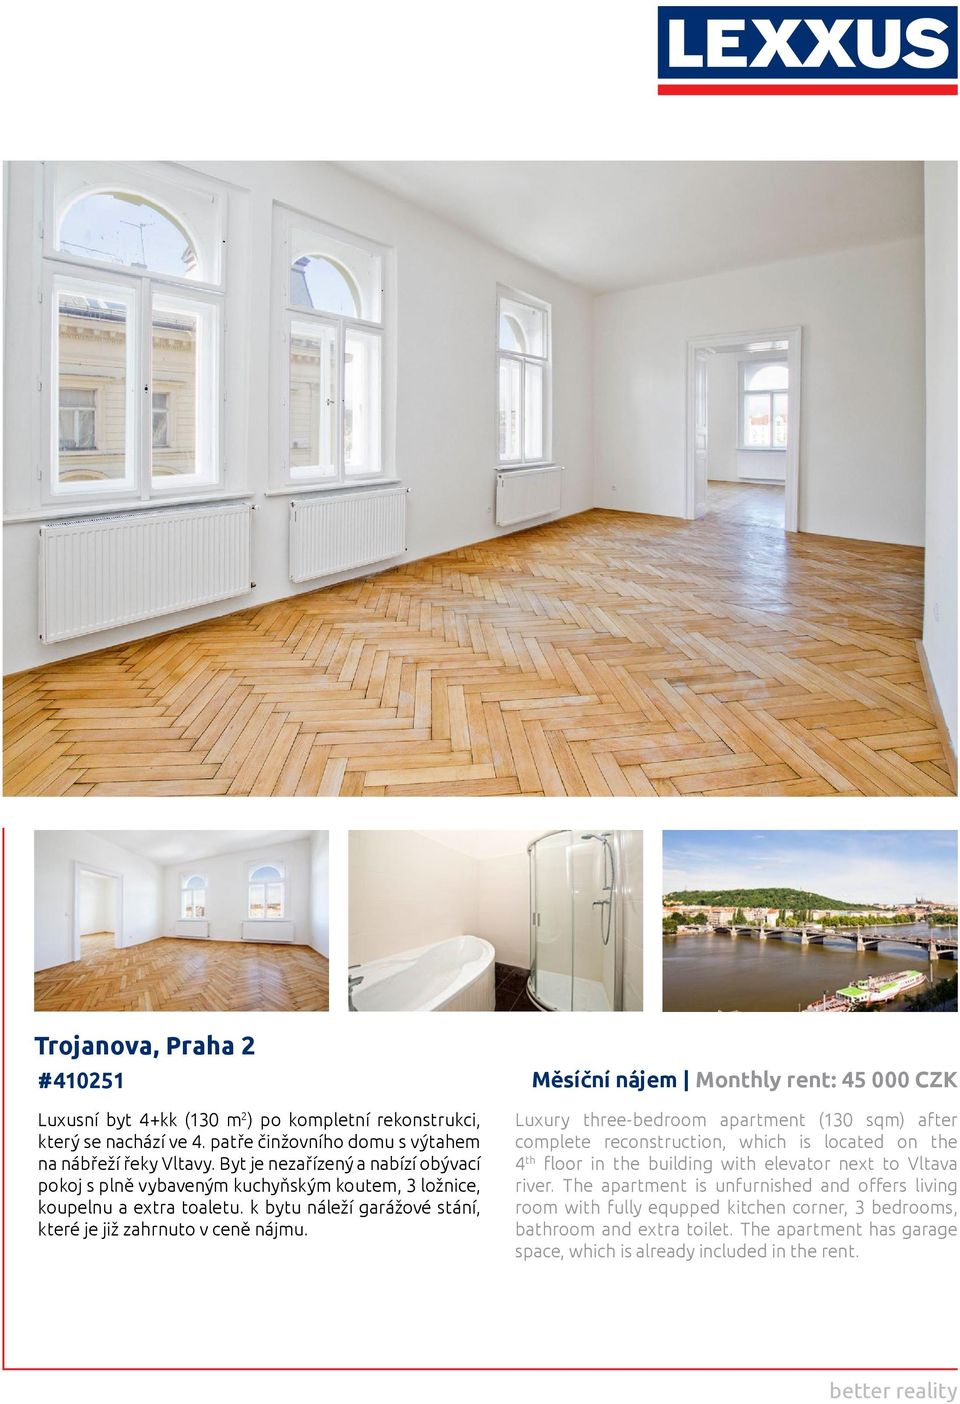 Měsíční nájem Monthly rent: 45 000 CZK Luxury three-bedroom apartment (130 sqm) after complete reconstruction, which is located on the 4 th floor in the building with elevator next to